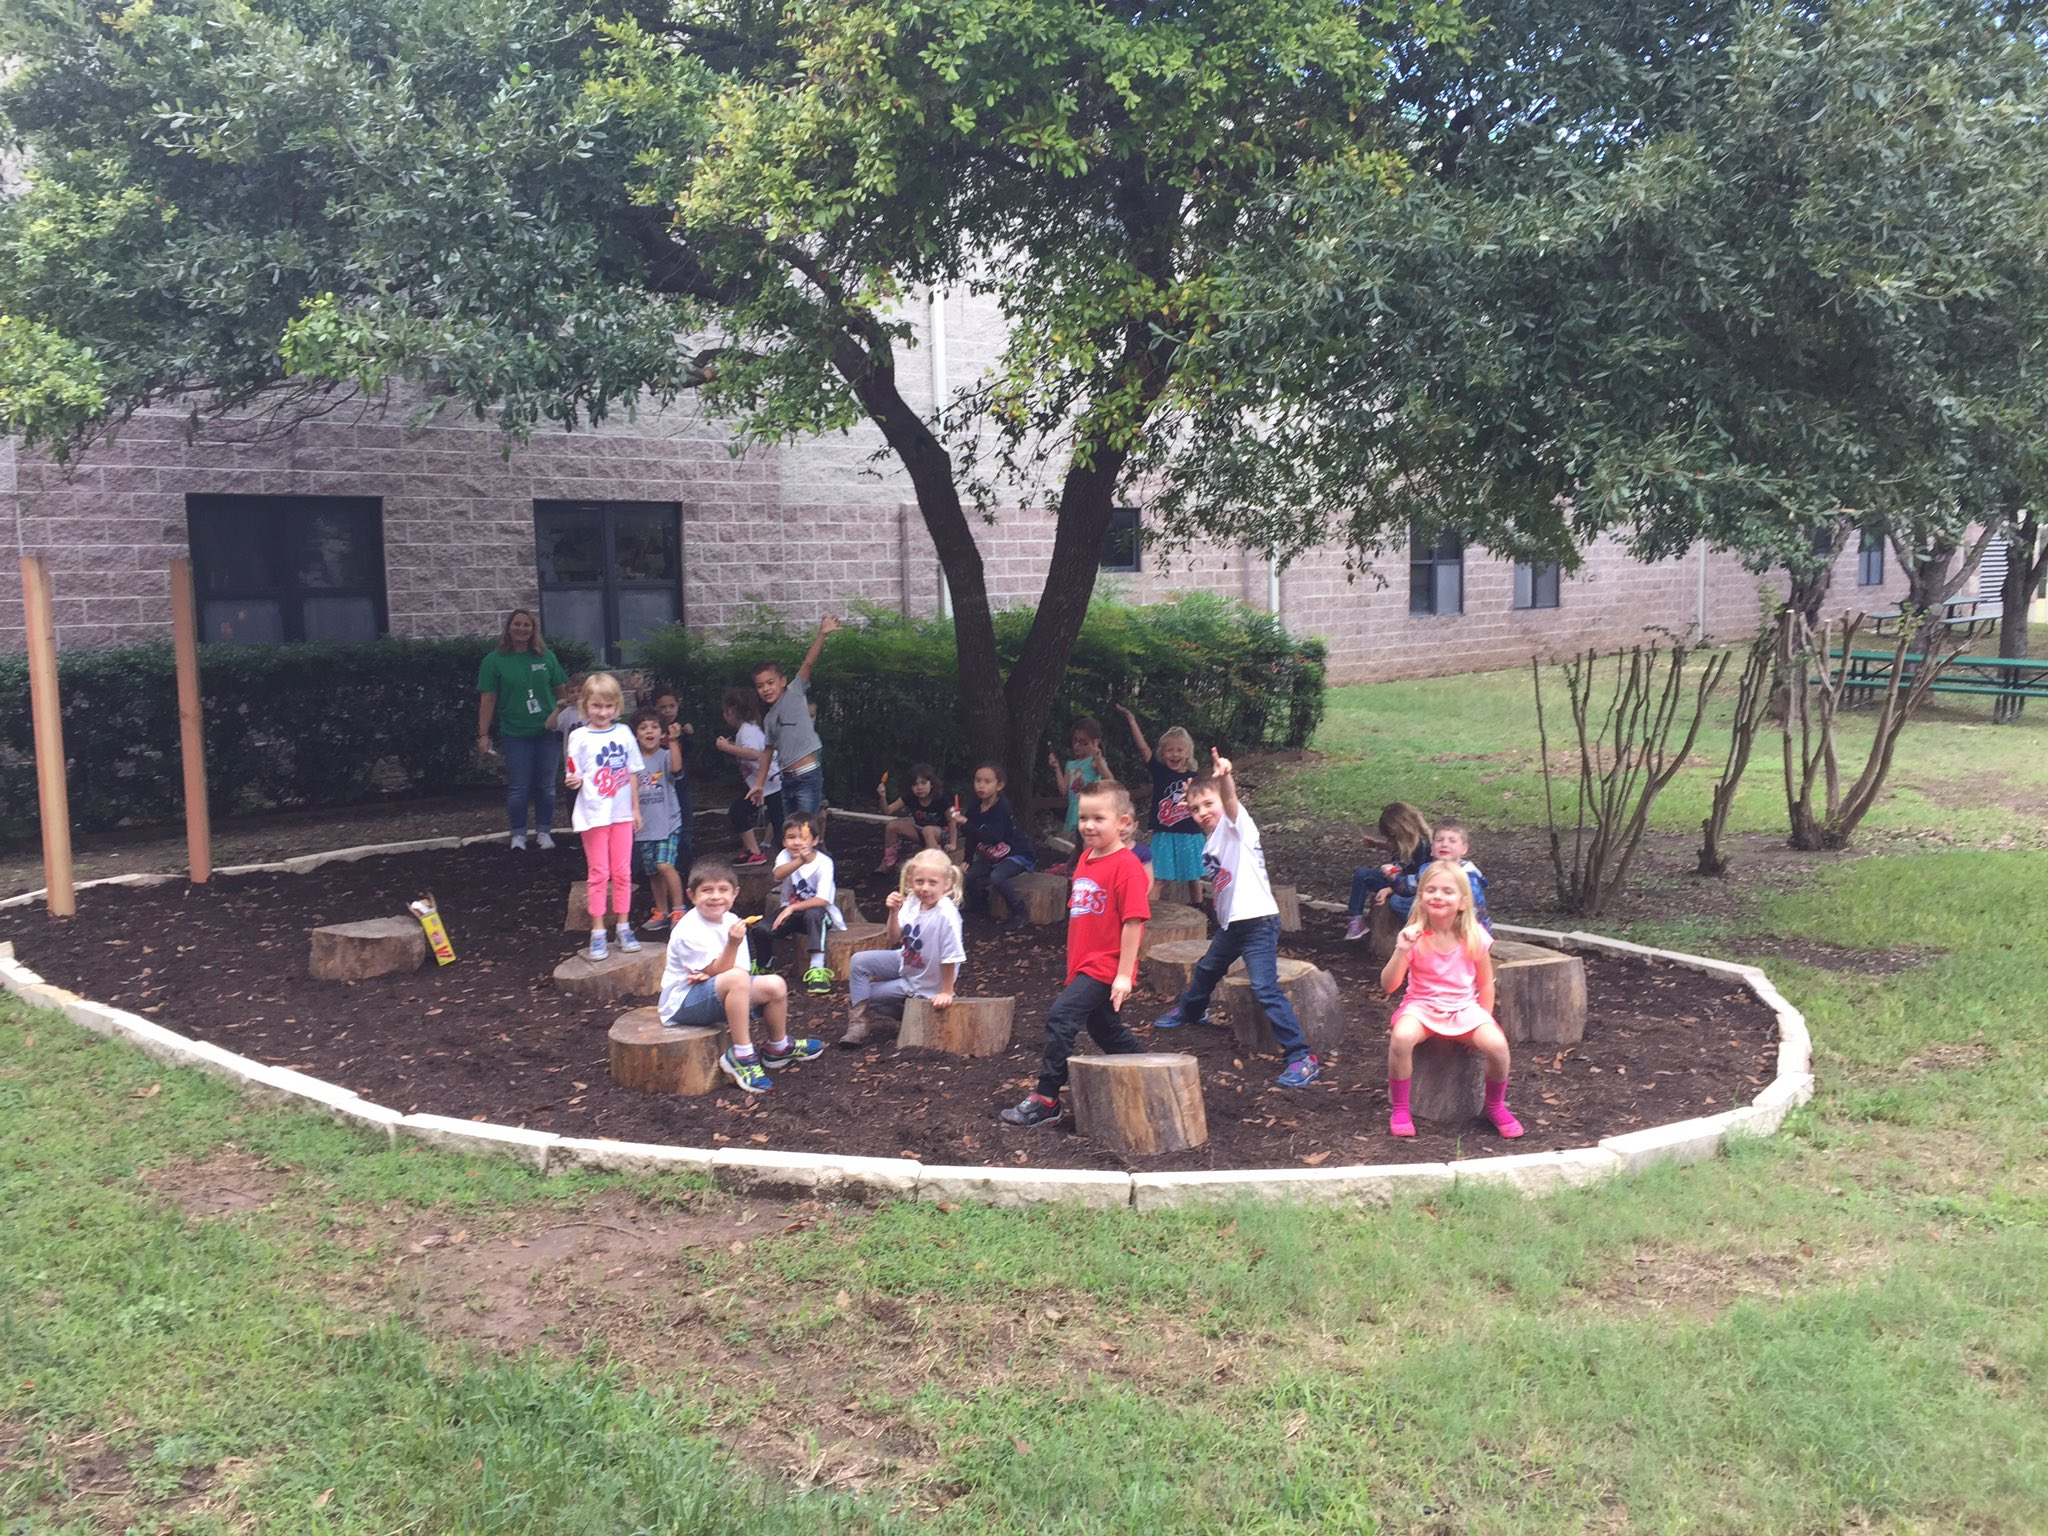 Ms. P's class enjoyed our new outdoor classroom today! https://t.co/b674iYF9ka